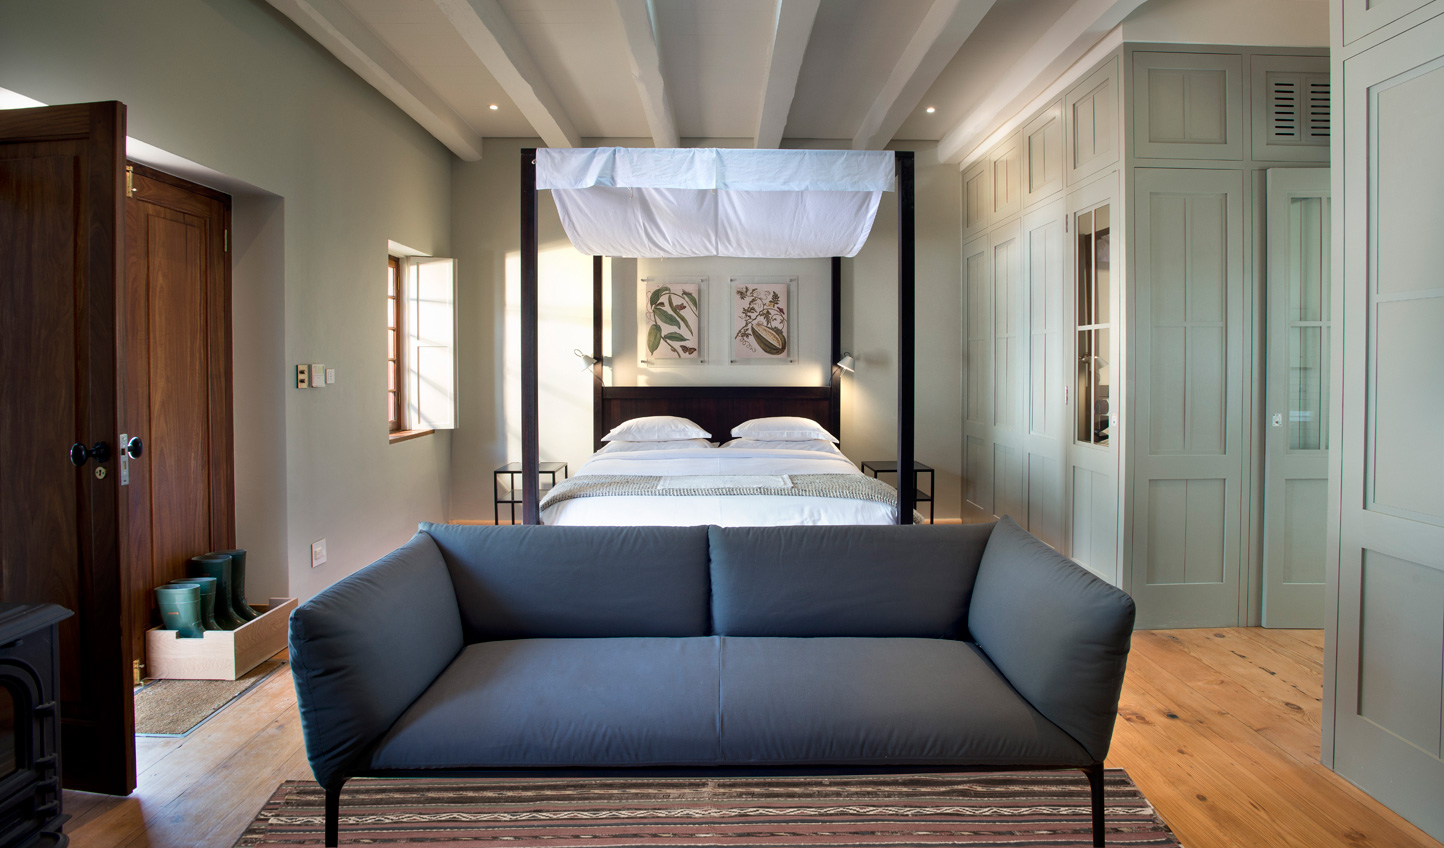 Feel at home in the Farmhouse rooms